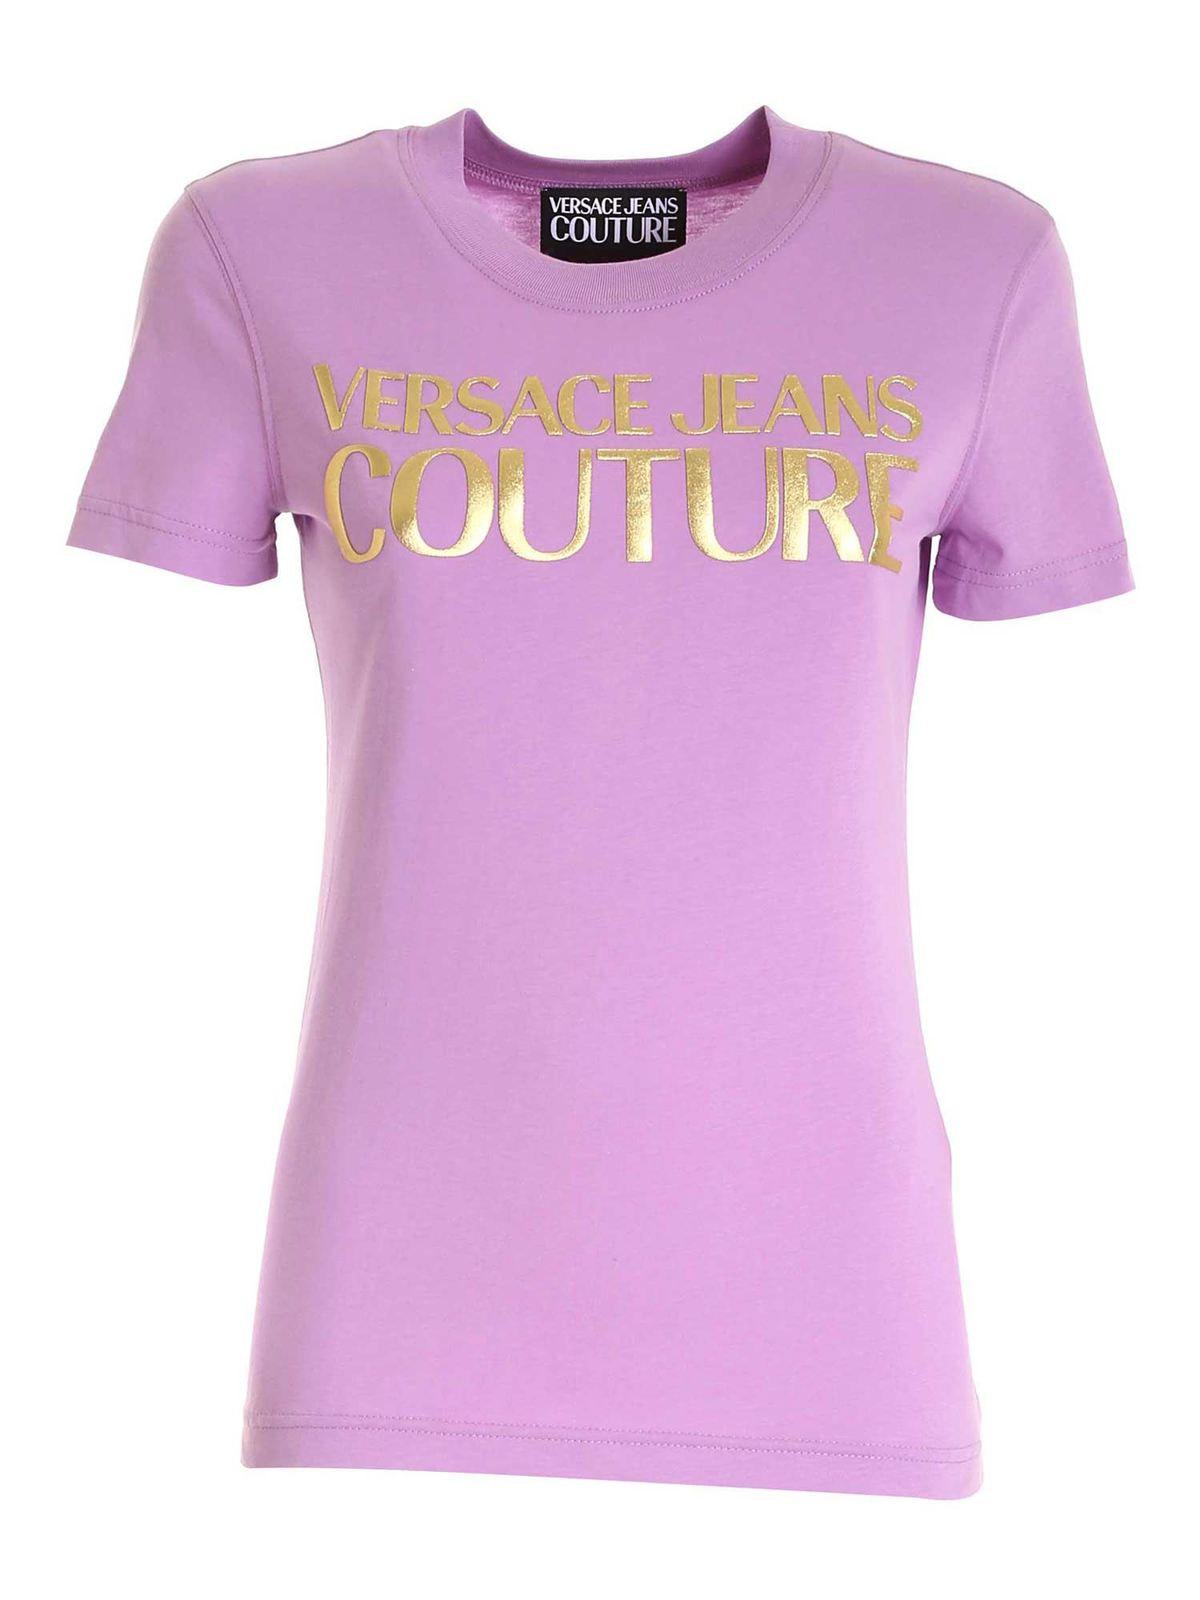 Versace Jeans Couture PRINT T-SHIRT IN PURPLE